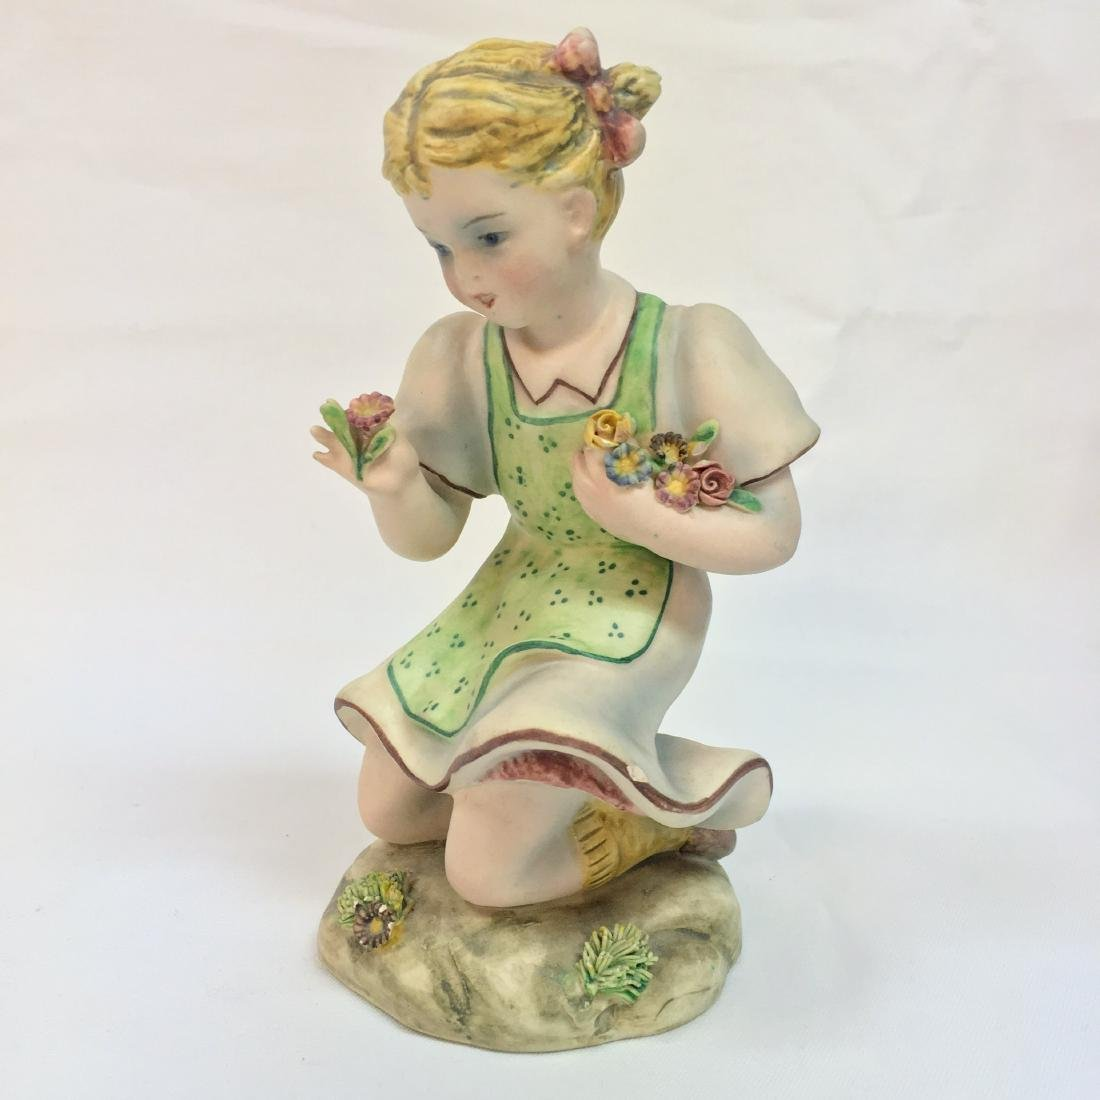 Vintage italian ceramic girl figurine ,signed on bottom